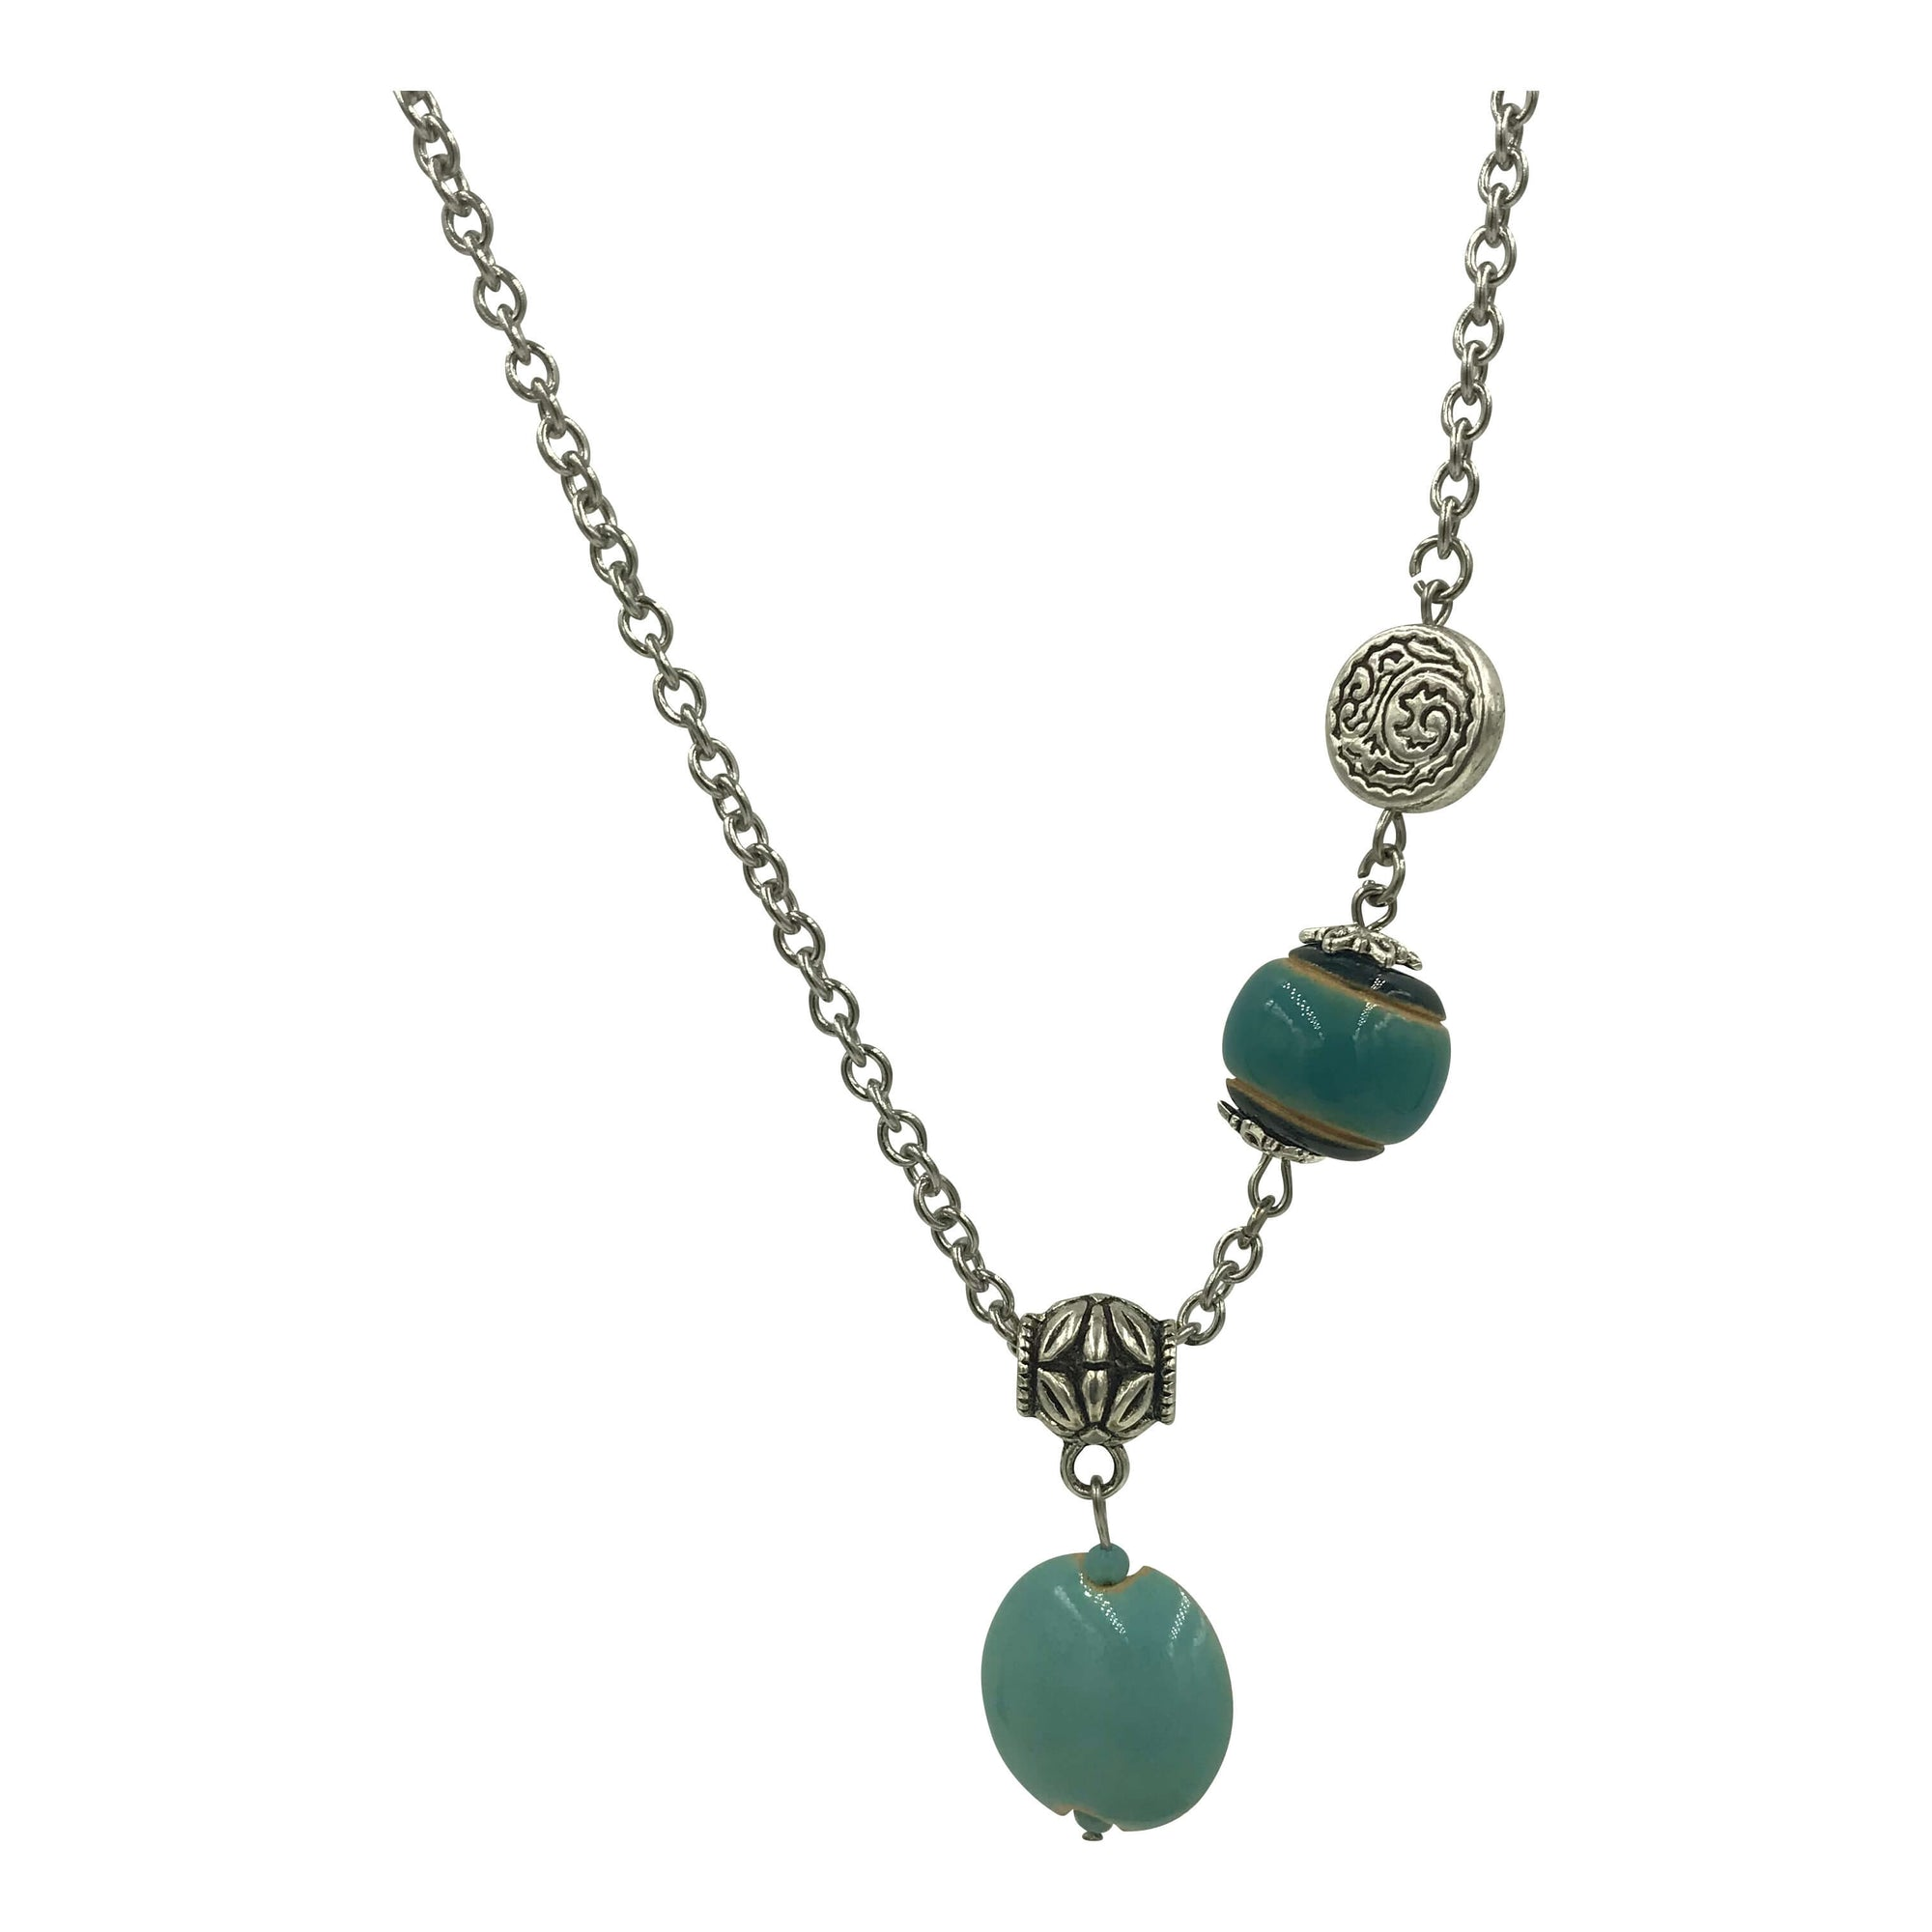 Pendant Necklace with Teal, Ocean Blue and Silver Beads - Creative Jewelry by Marcia - Asymmetrical Jewelry - Timeless Jewelry